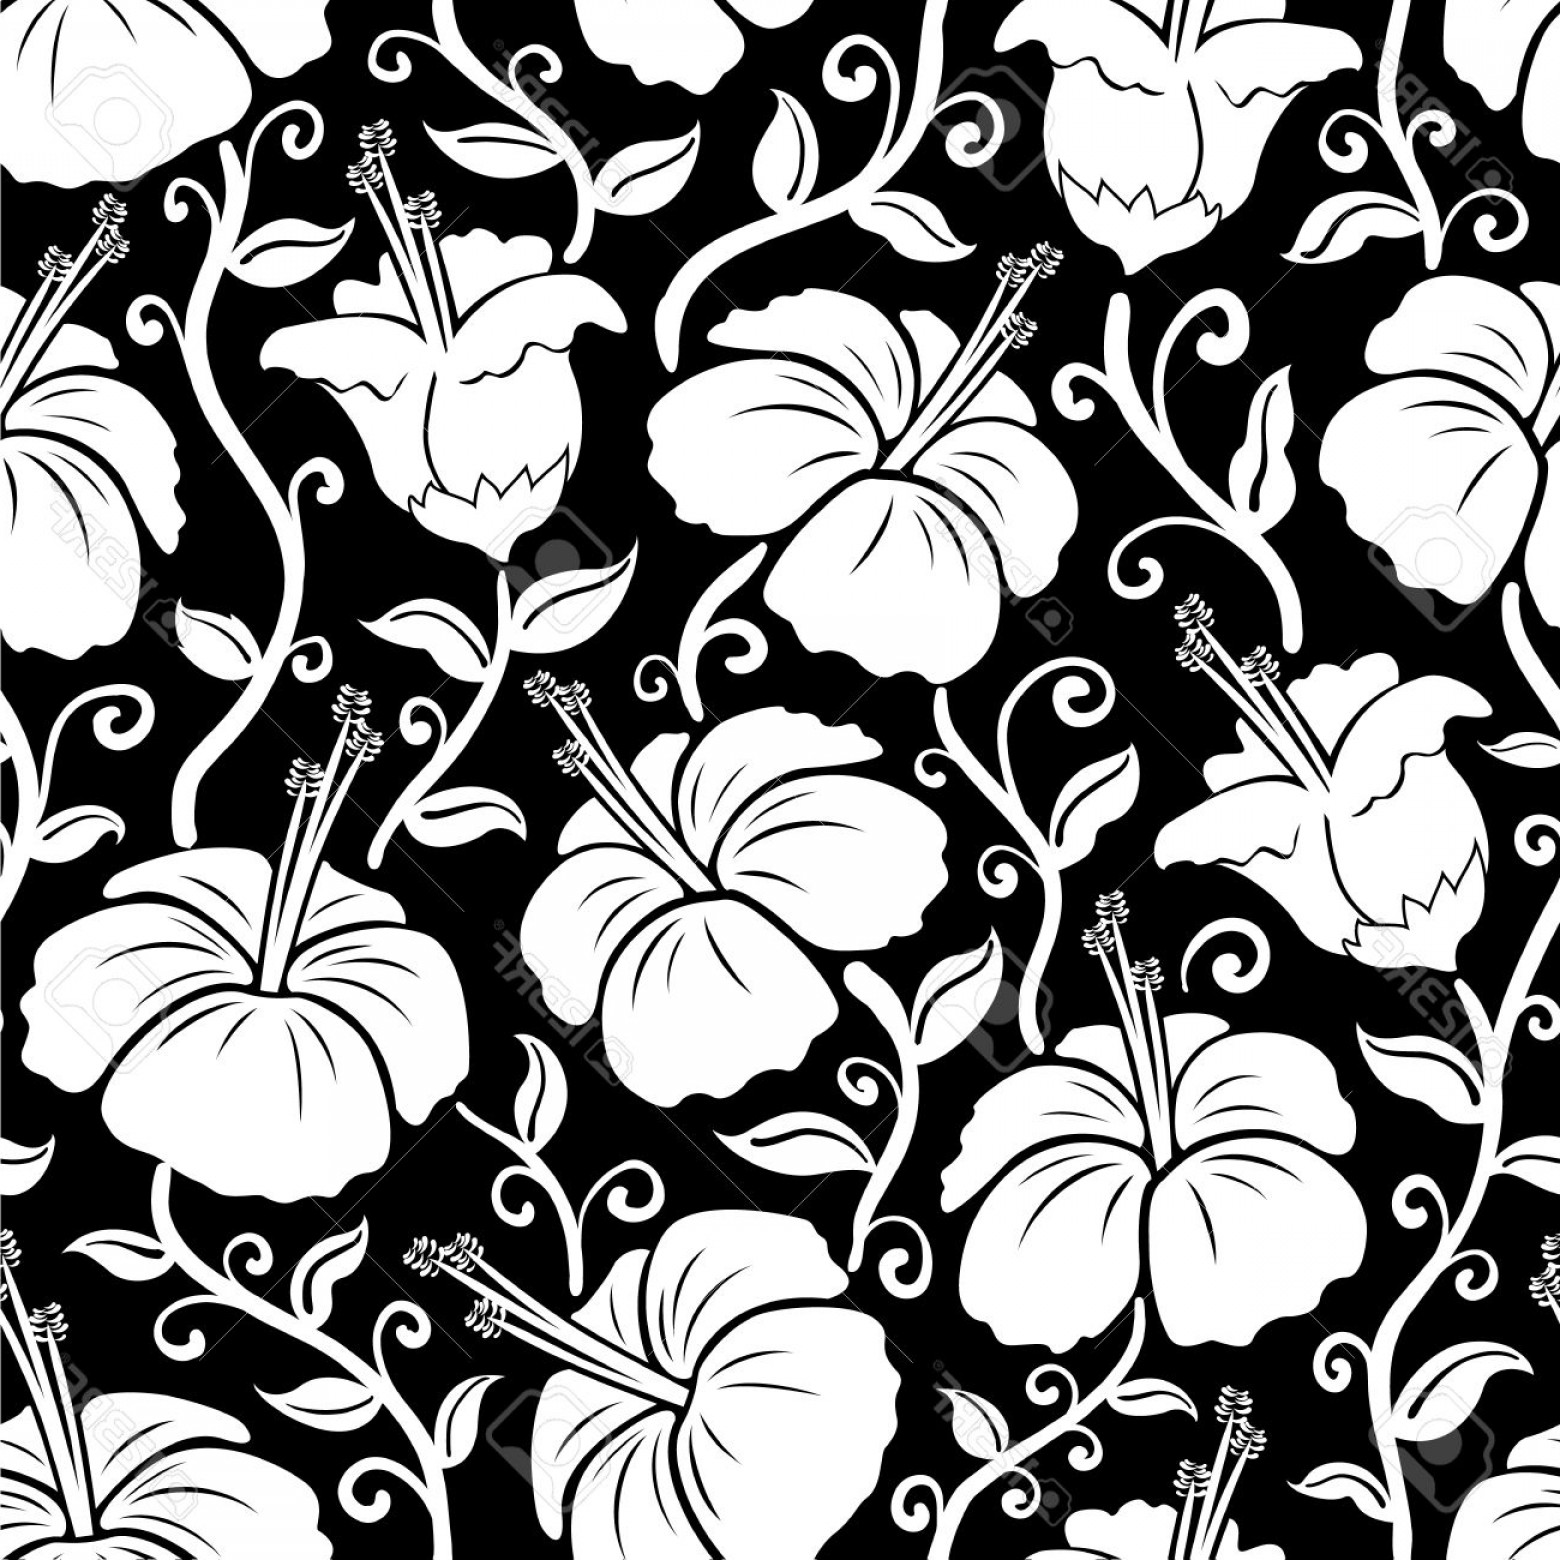 Hawaiian Pattern Vector: Photostock Vector Hawaiian Print Seamless Hibiscus Flower Background Pattern Illustration Of Hibiscus Flowers Works Gr